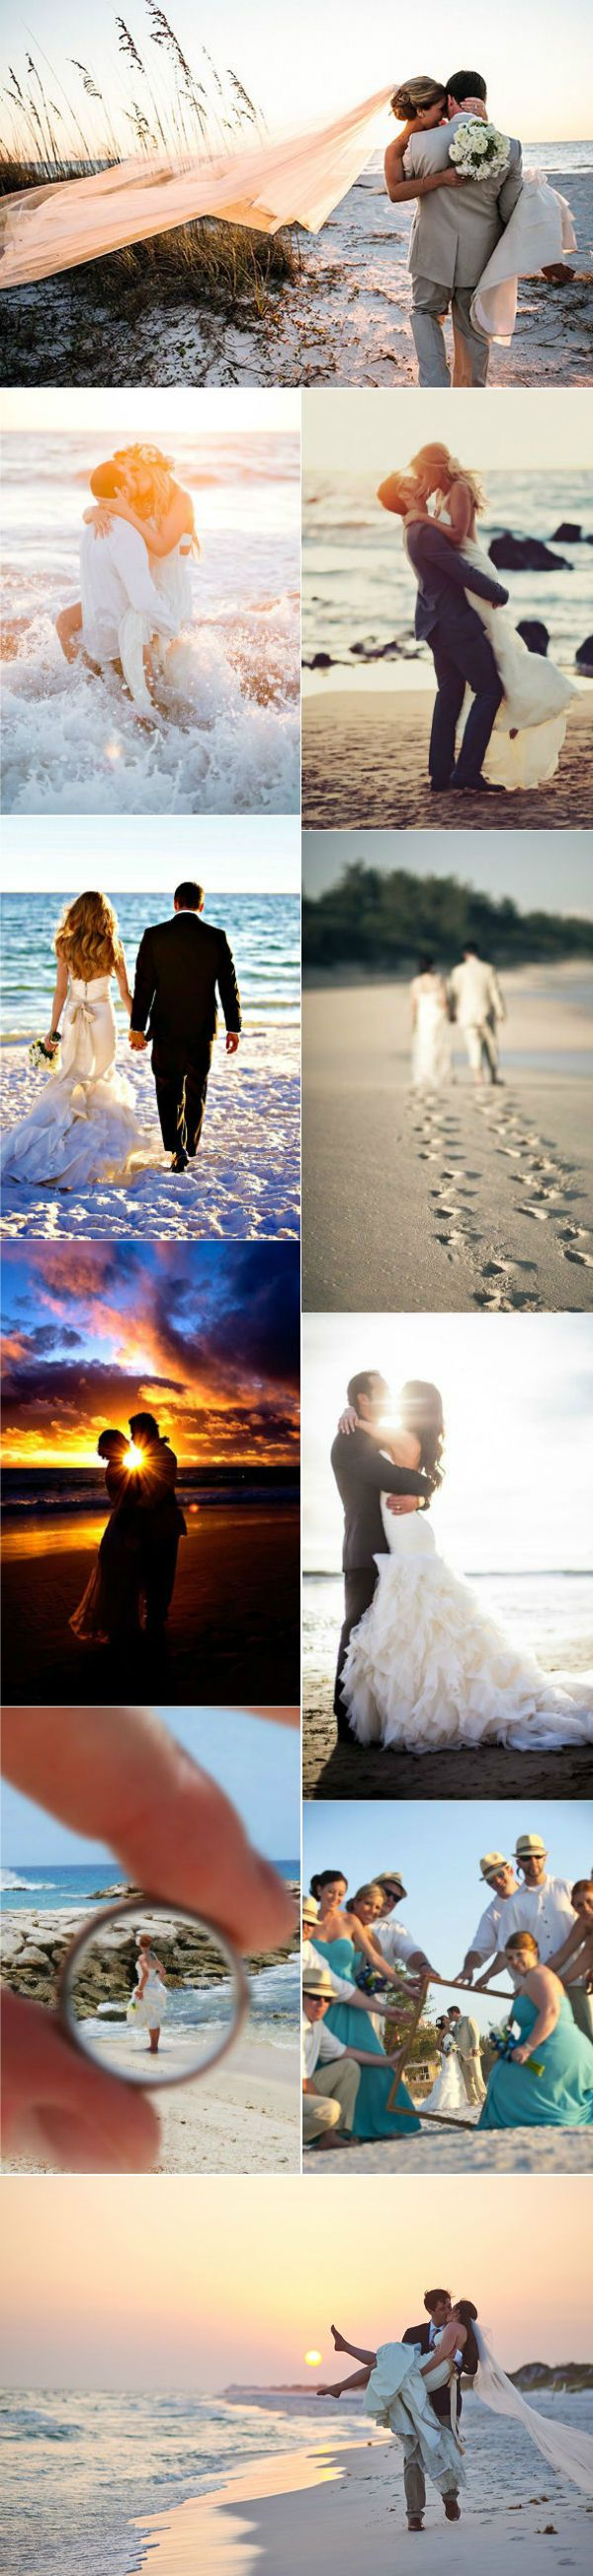 most romantic beach wedding photo ideas